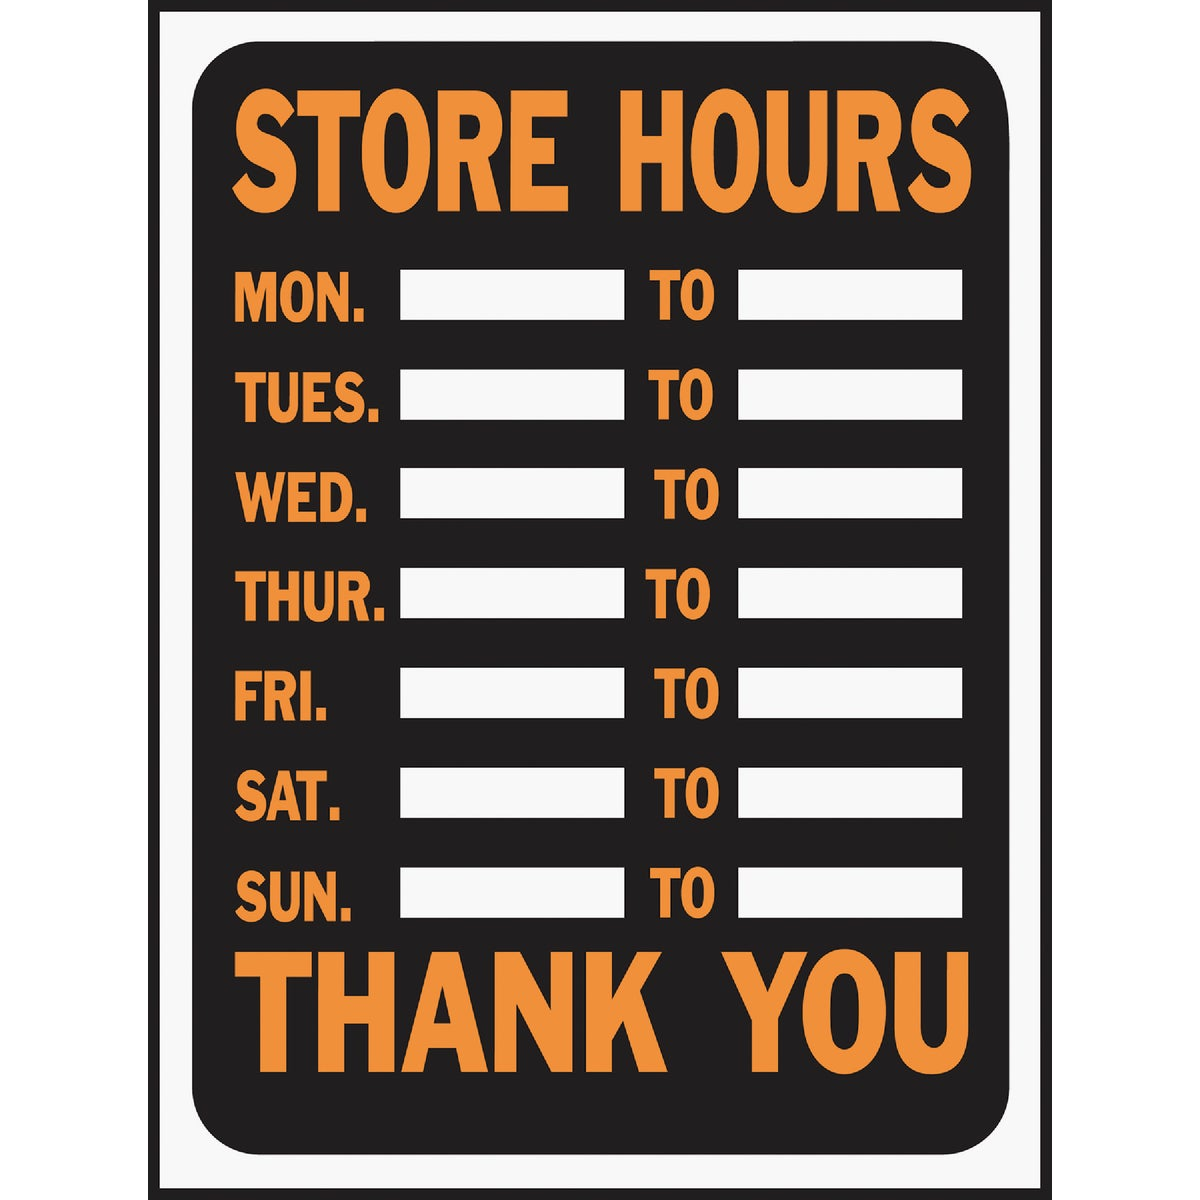 9X12 STORE HOURS SIGN - 3030 by Hy Ko Prods Co